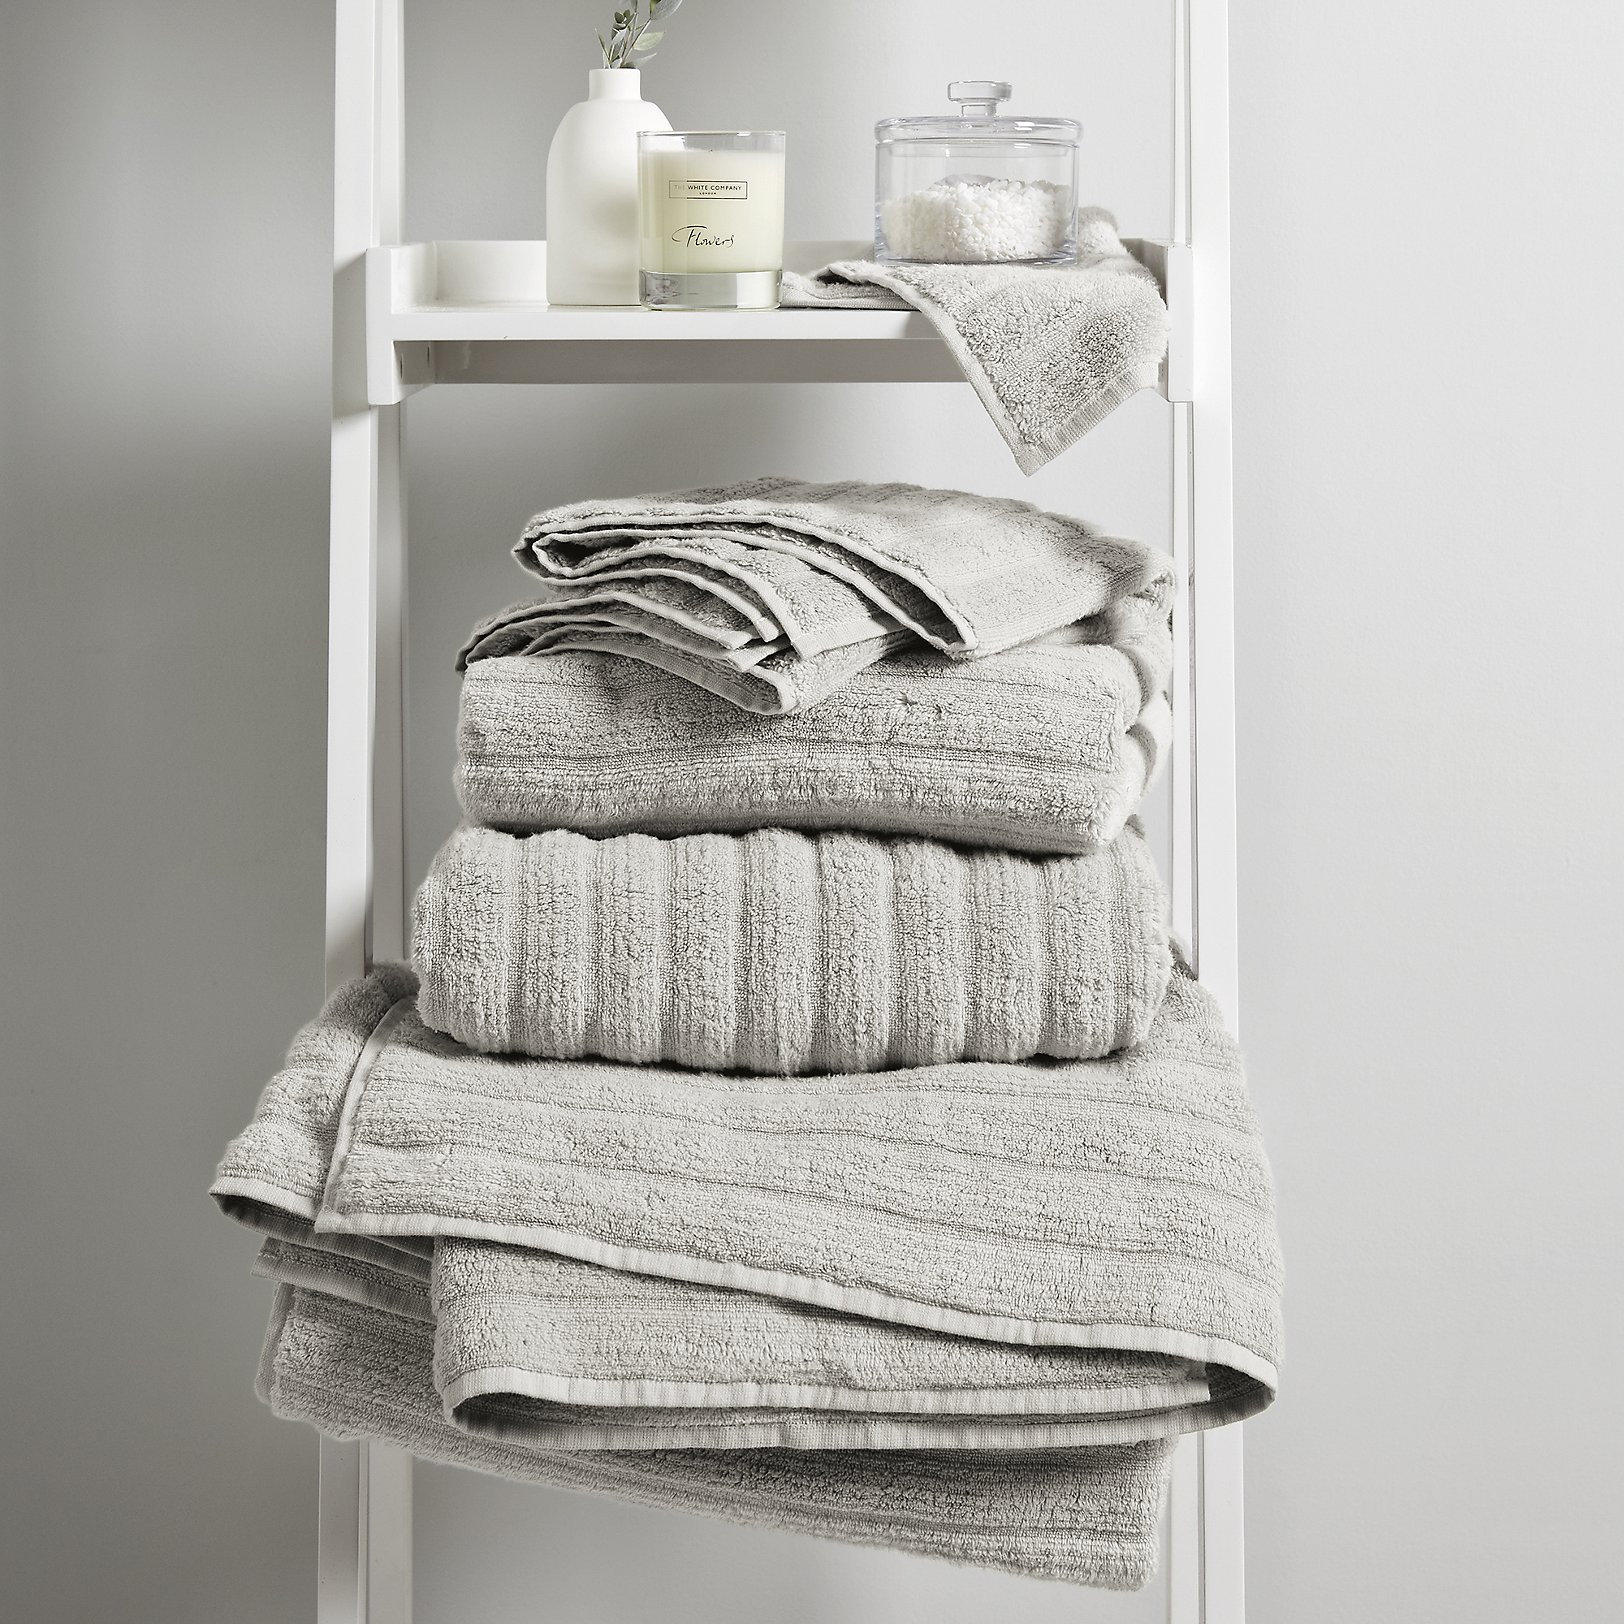 Hydrocotton Towels   Pearl Grey. Towels   Bath Sheets   Hand   Guest   The White Company